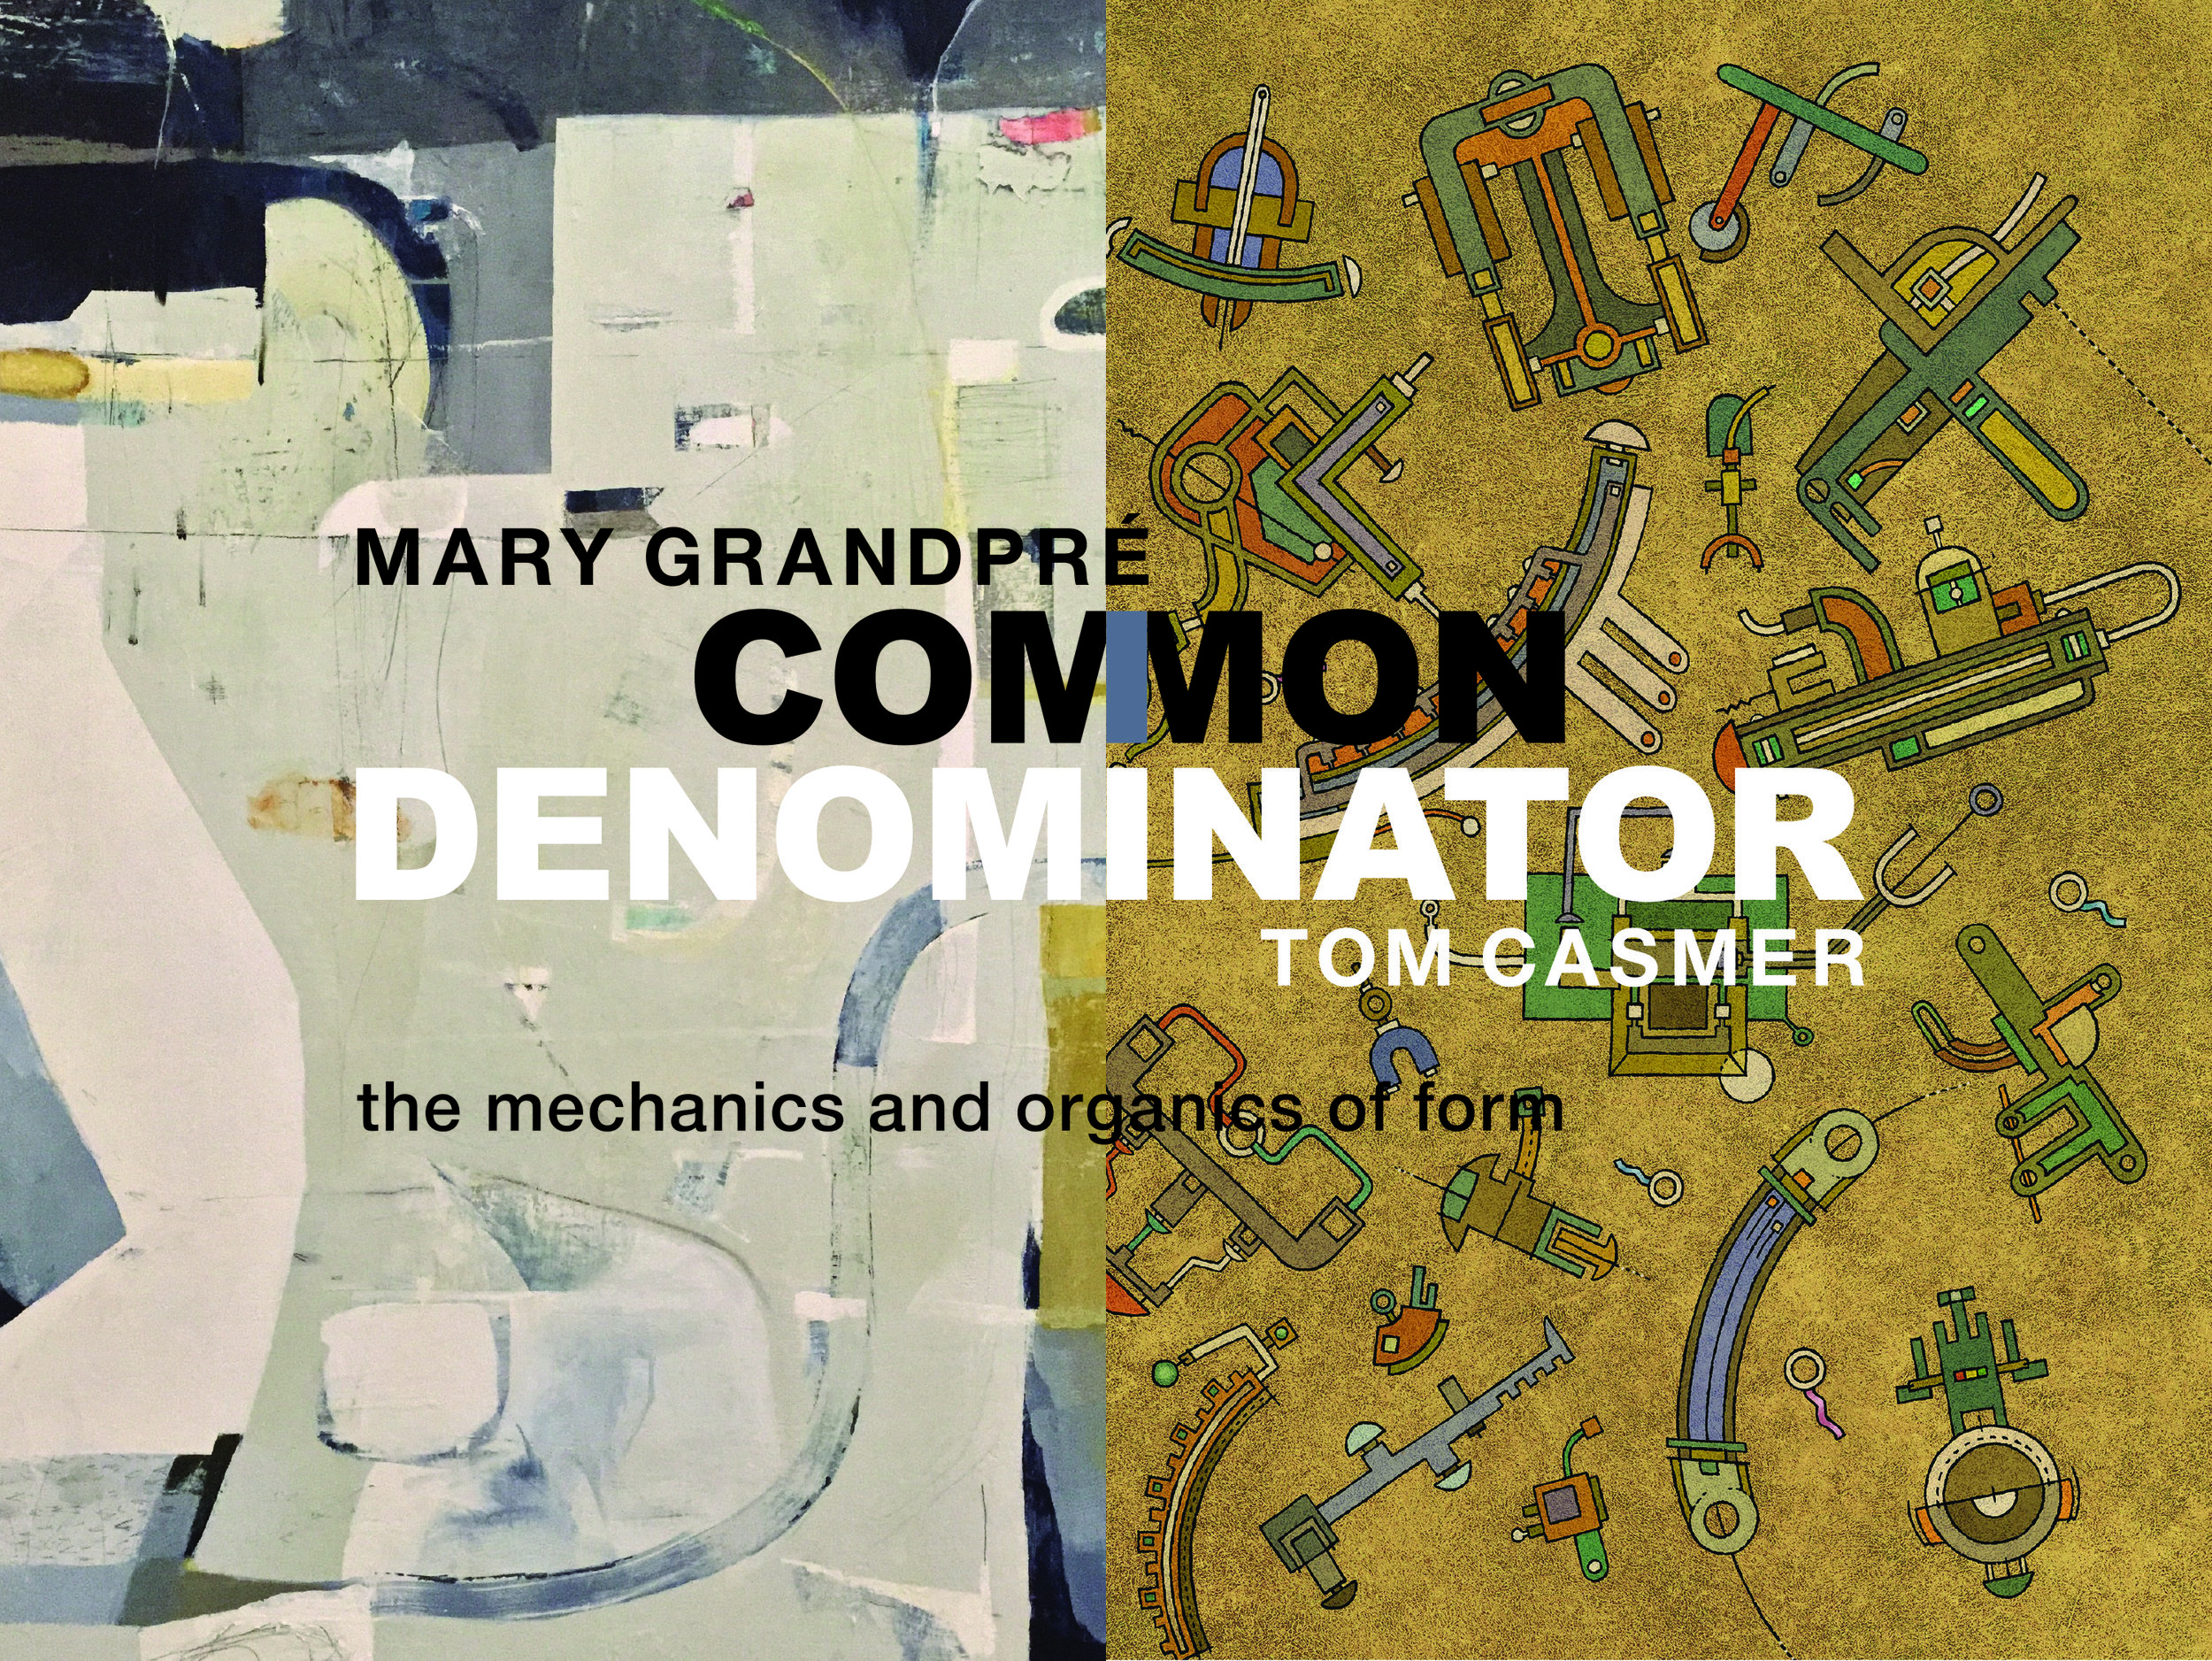 OPENING RECEPTION, SATURDAY APRIL 13, 5-8PM . OPENING RECEPTION: COMMON DENOMINATOR, MARY GRANDPRÉ + TOM CASMER: the mechanics and organics of form.